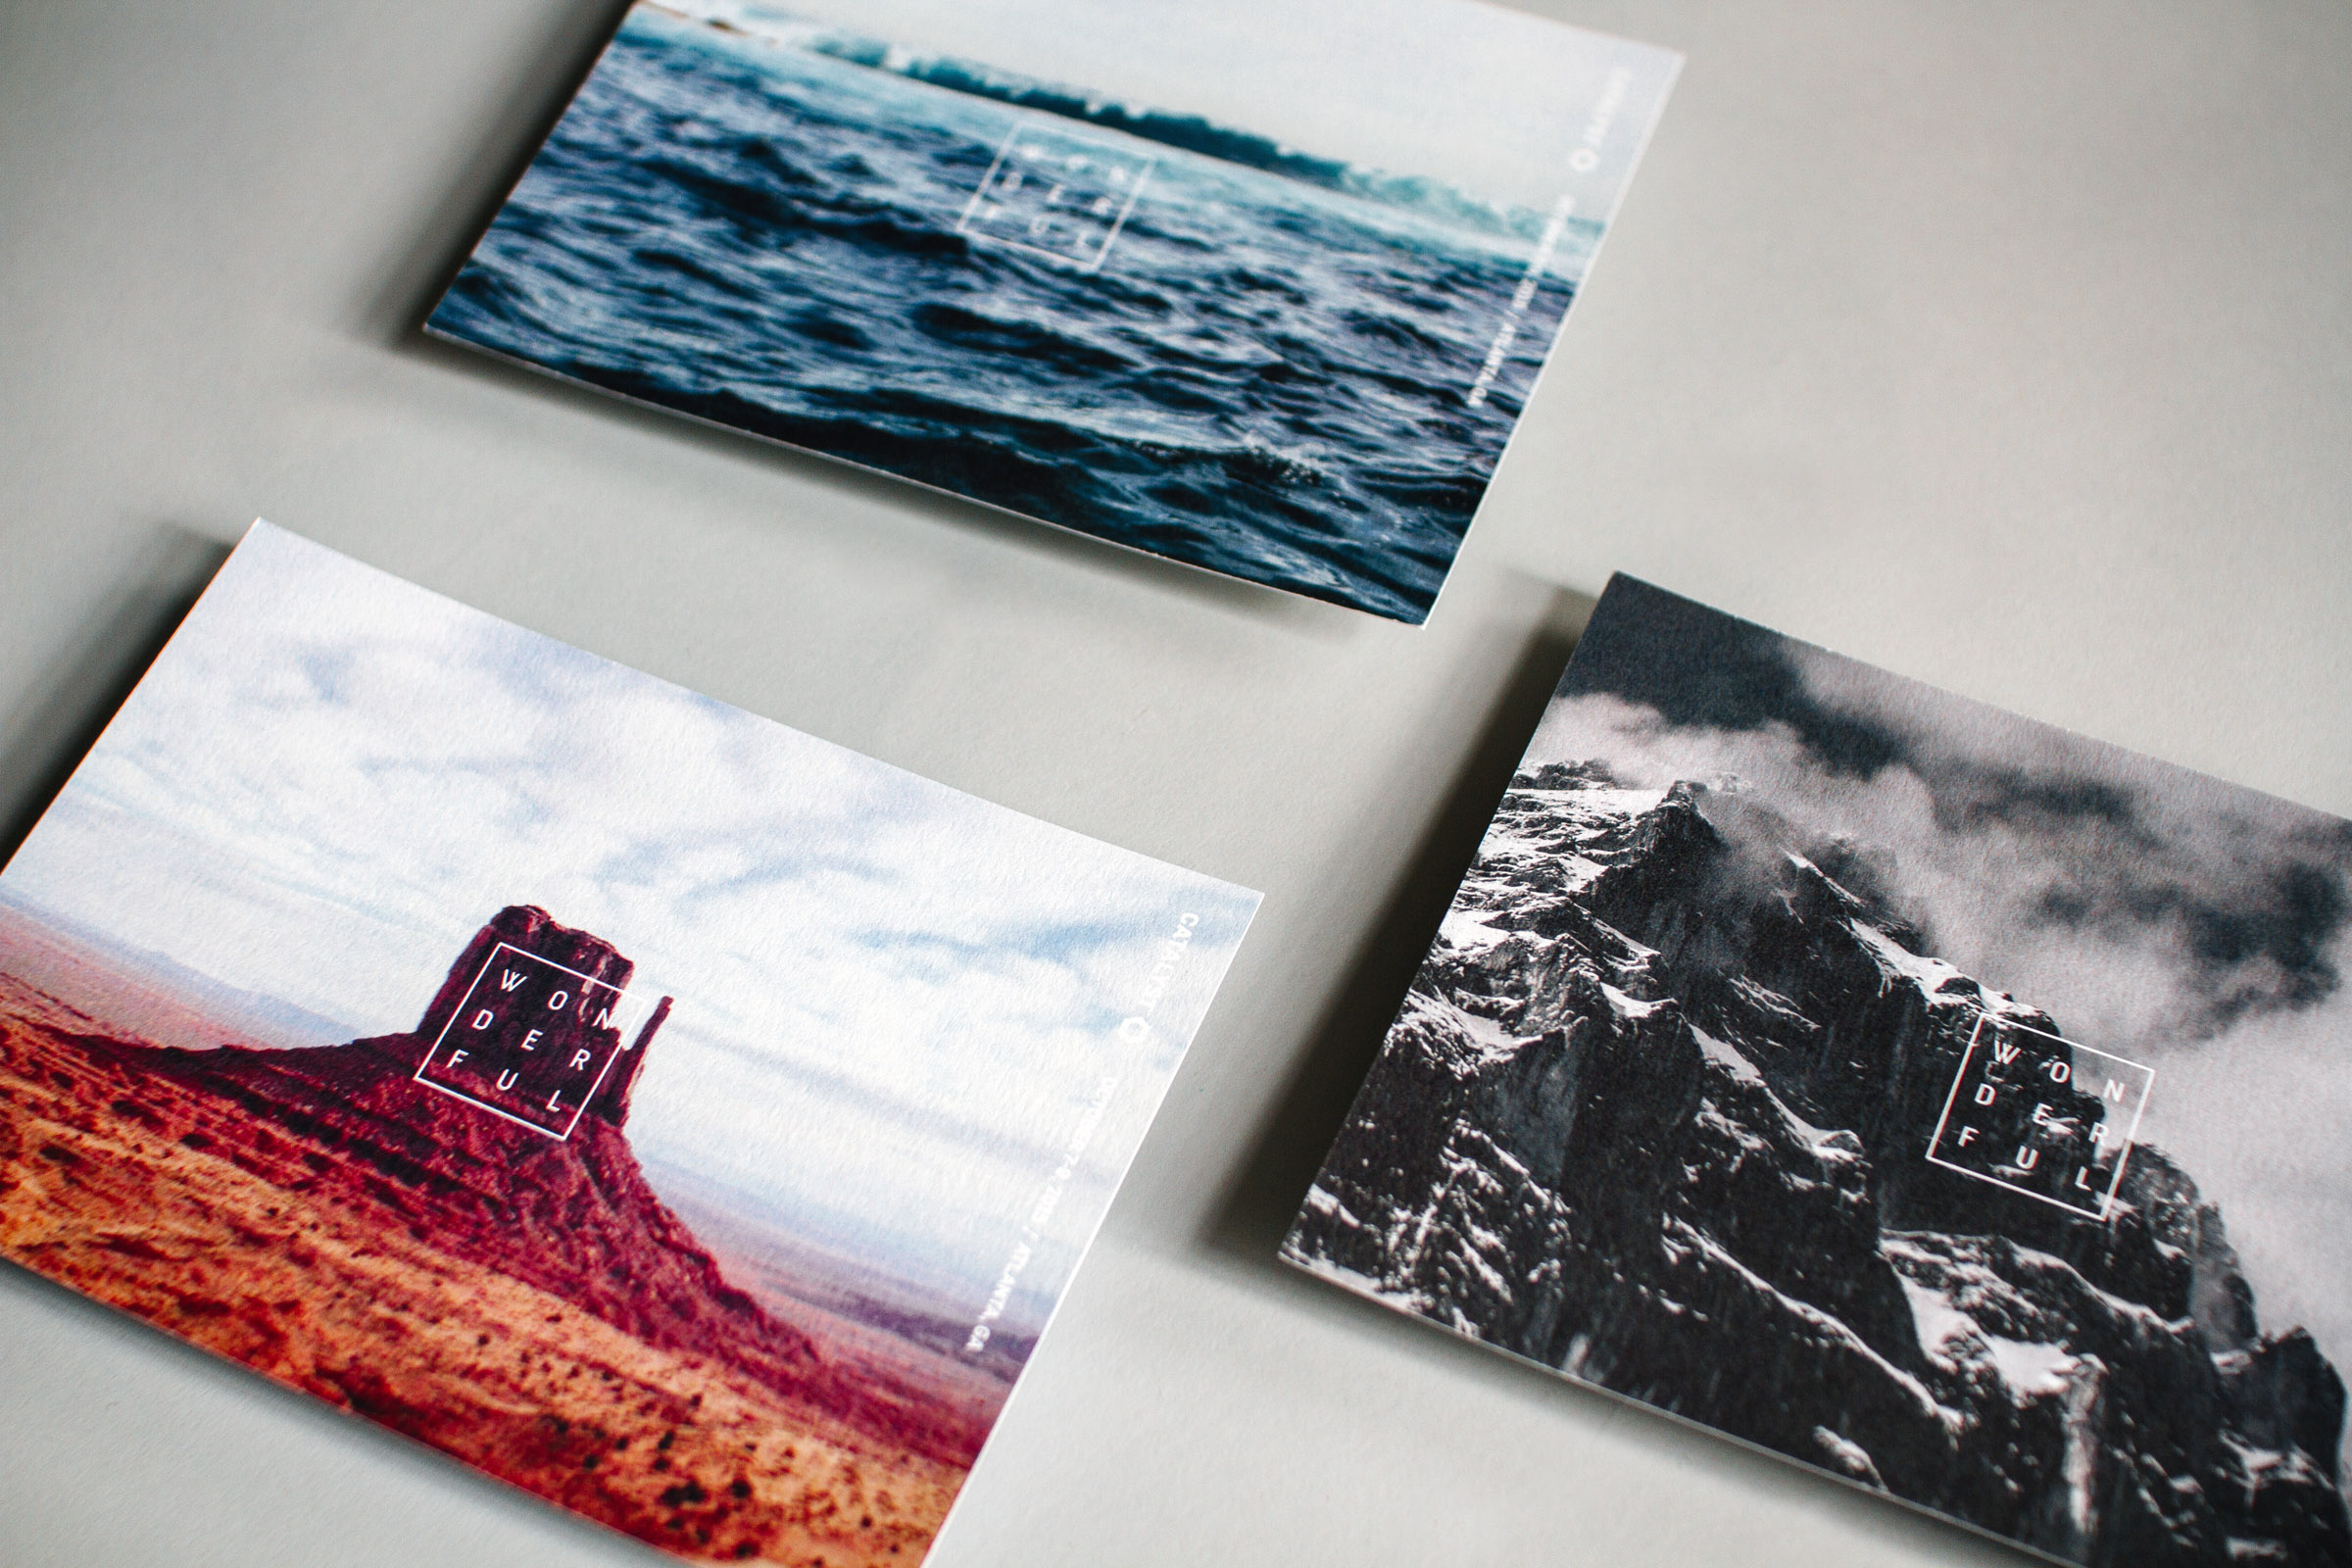 """Catalyst promotional postcards for Awaken the Wonder feature a """"Wonderful"""" typographic lockup in a square over beautiful photography of different landscapes deserts mountains and oceans."""